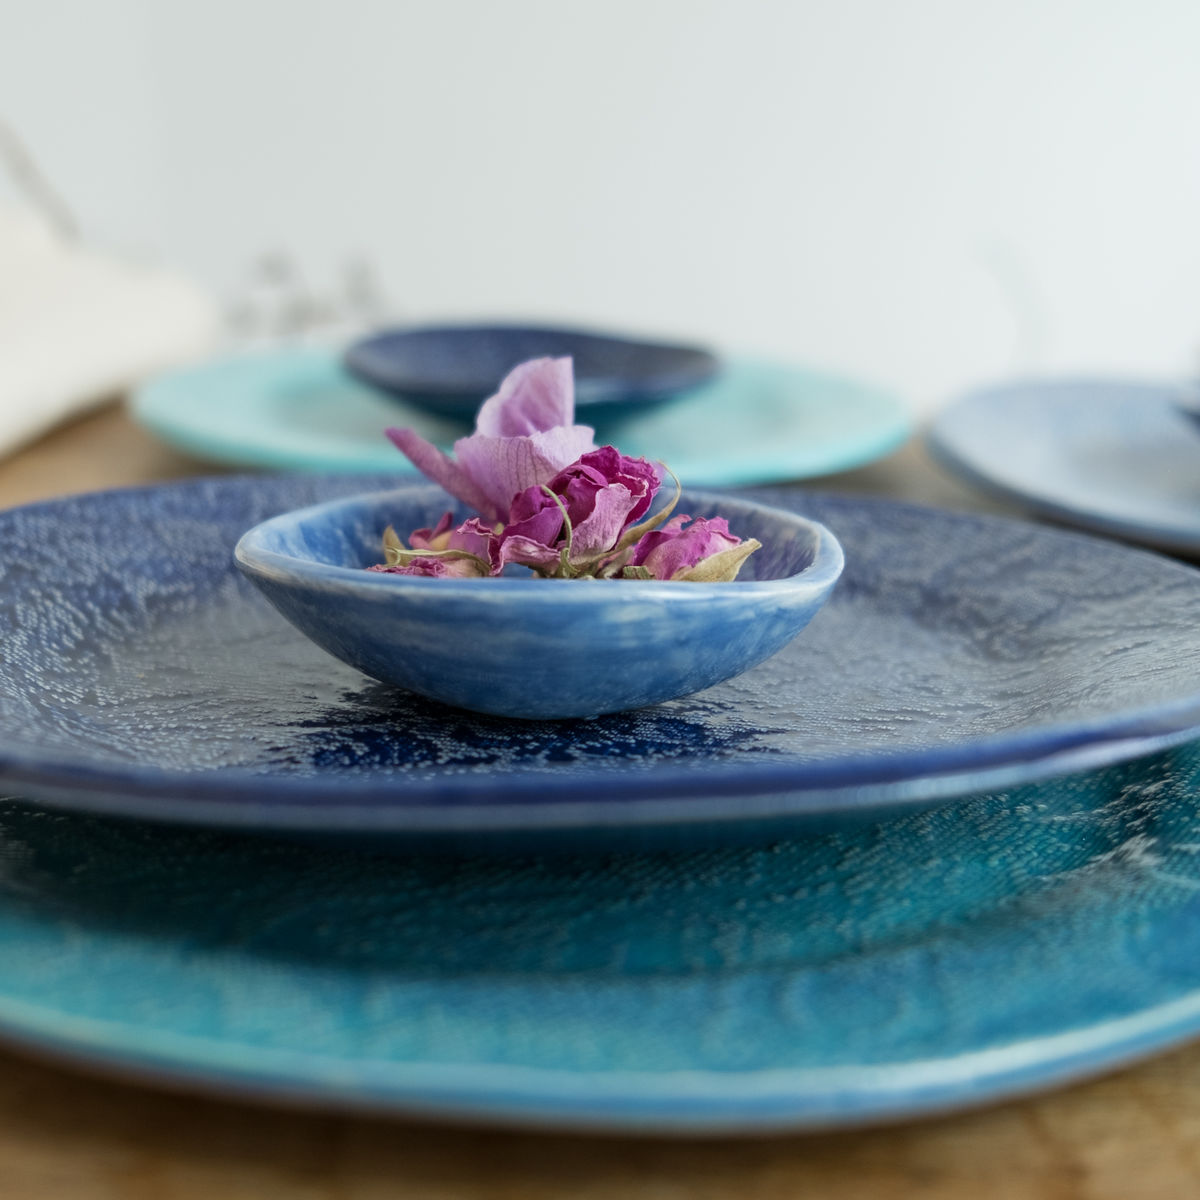 Turabi ceramics - Lake blue lace imprinted tiny bowl - Handcrafted in Palestine - product images  of